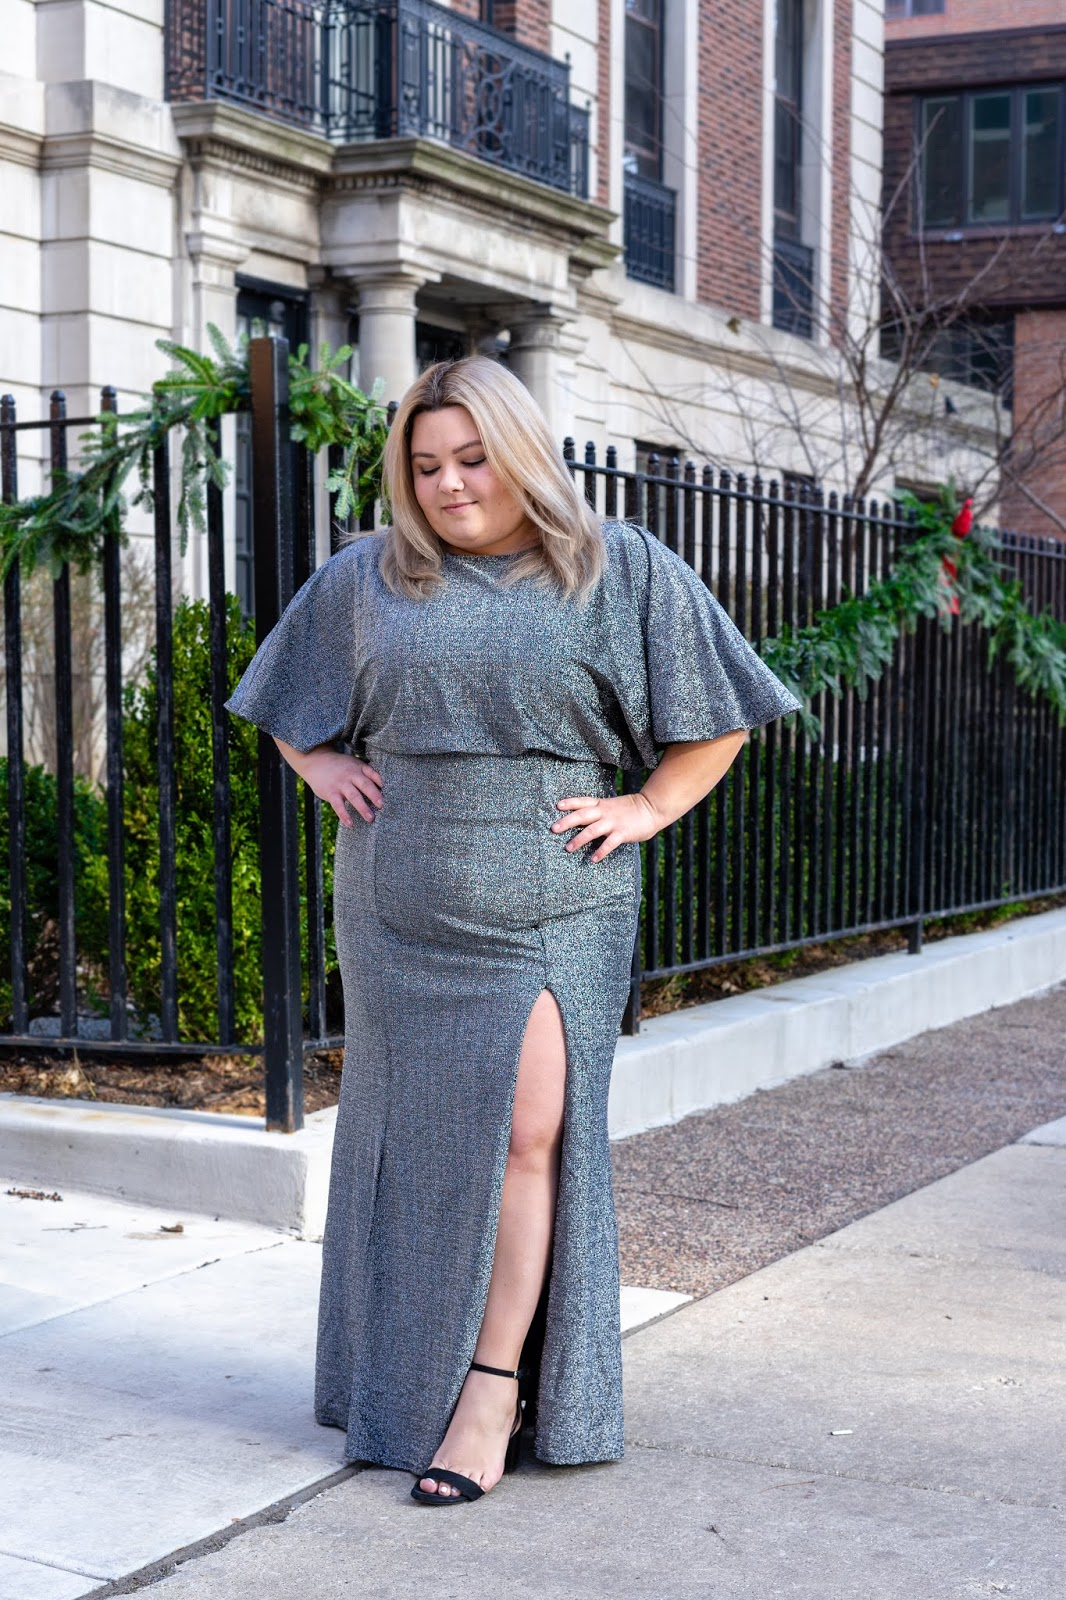 Chicago Plus Size Petite Fashion Blogger and model Natalie Craig styles plus size clothing brand Marée Pour Toi's holiday Doleman Shimmer Dress, debuted at CurvyCon